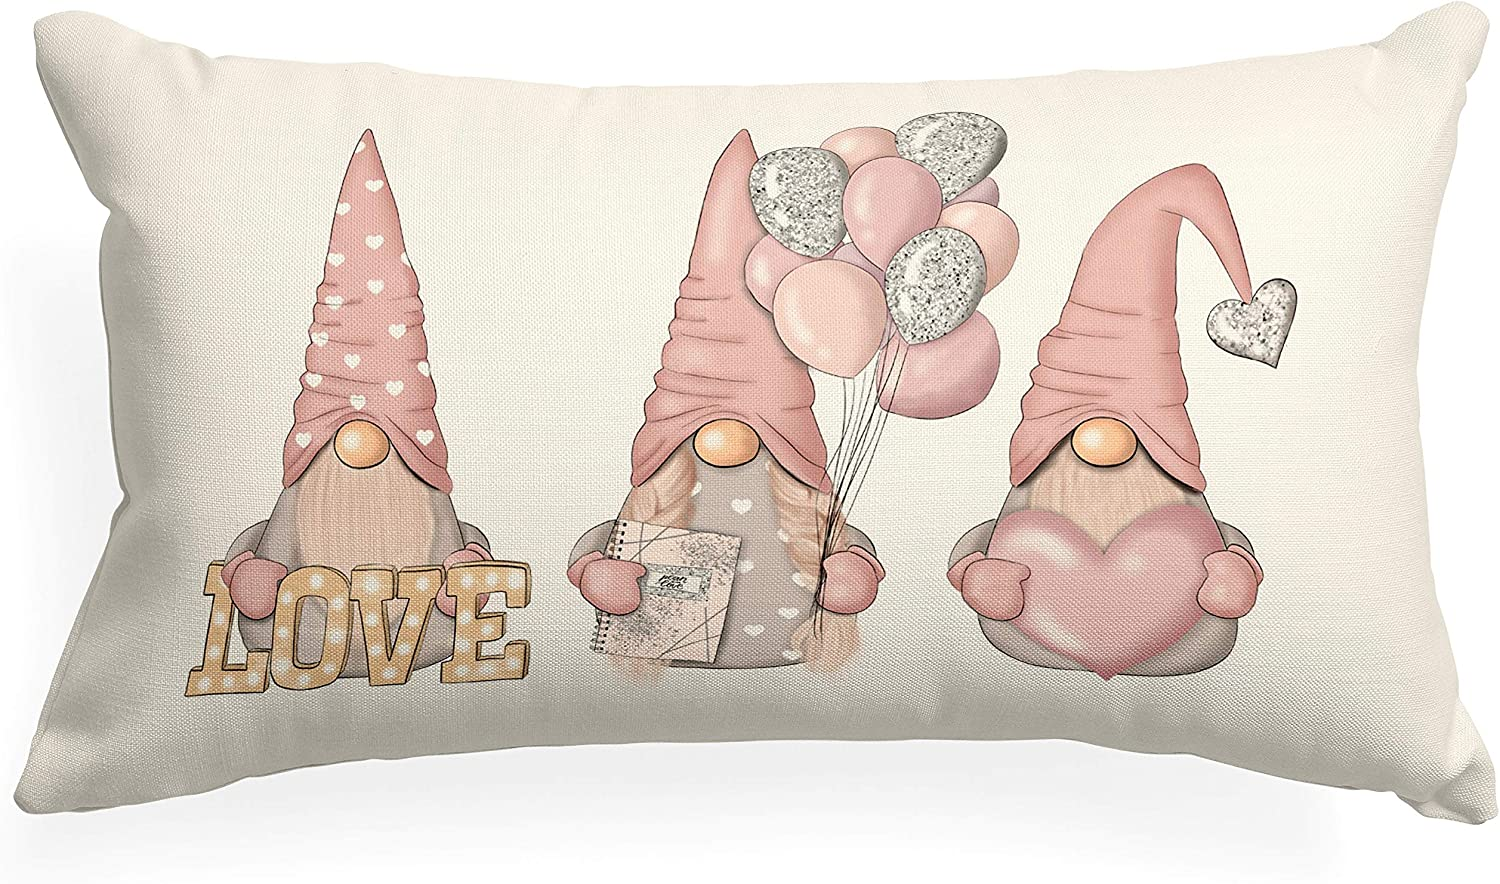 XUWELL Cute Pink Gnome Love Cotton Linen Throw Pillow Cover, Valentines Day Gnome Lover Gifts, Cushion Cover for Sofa Bed Home Decor 12 x 20 Inch